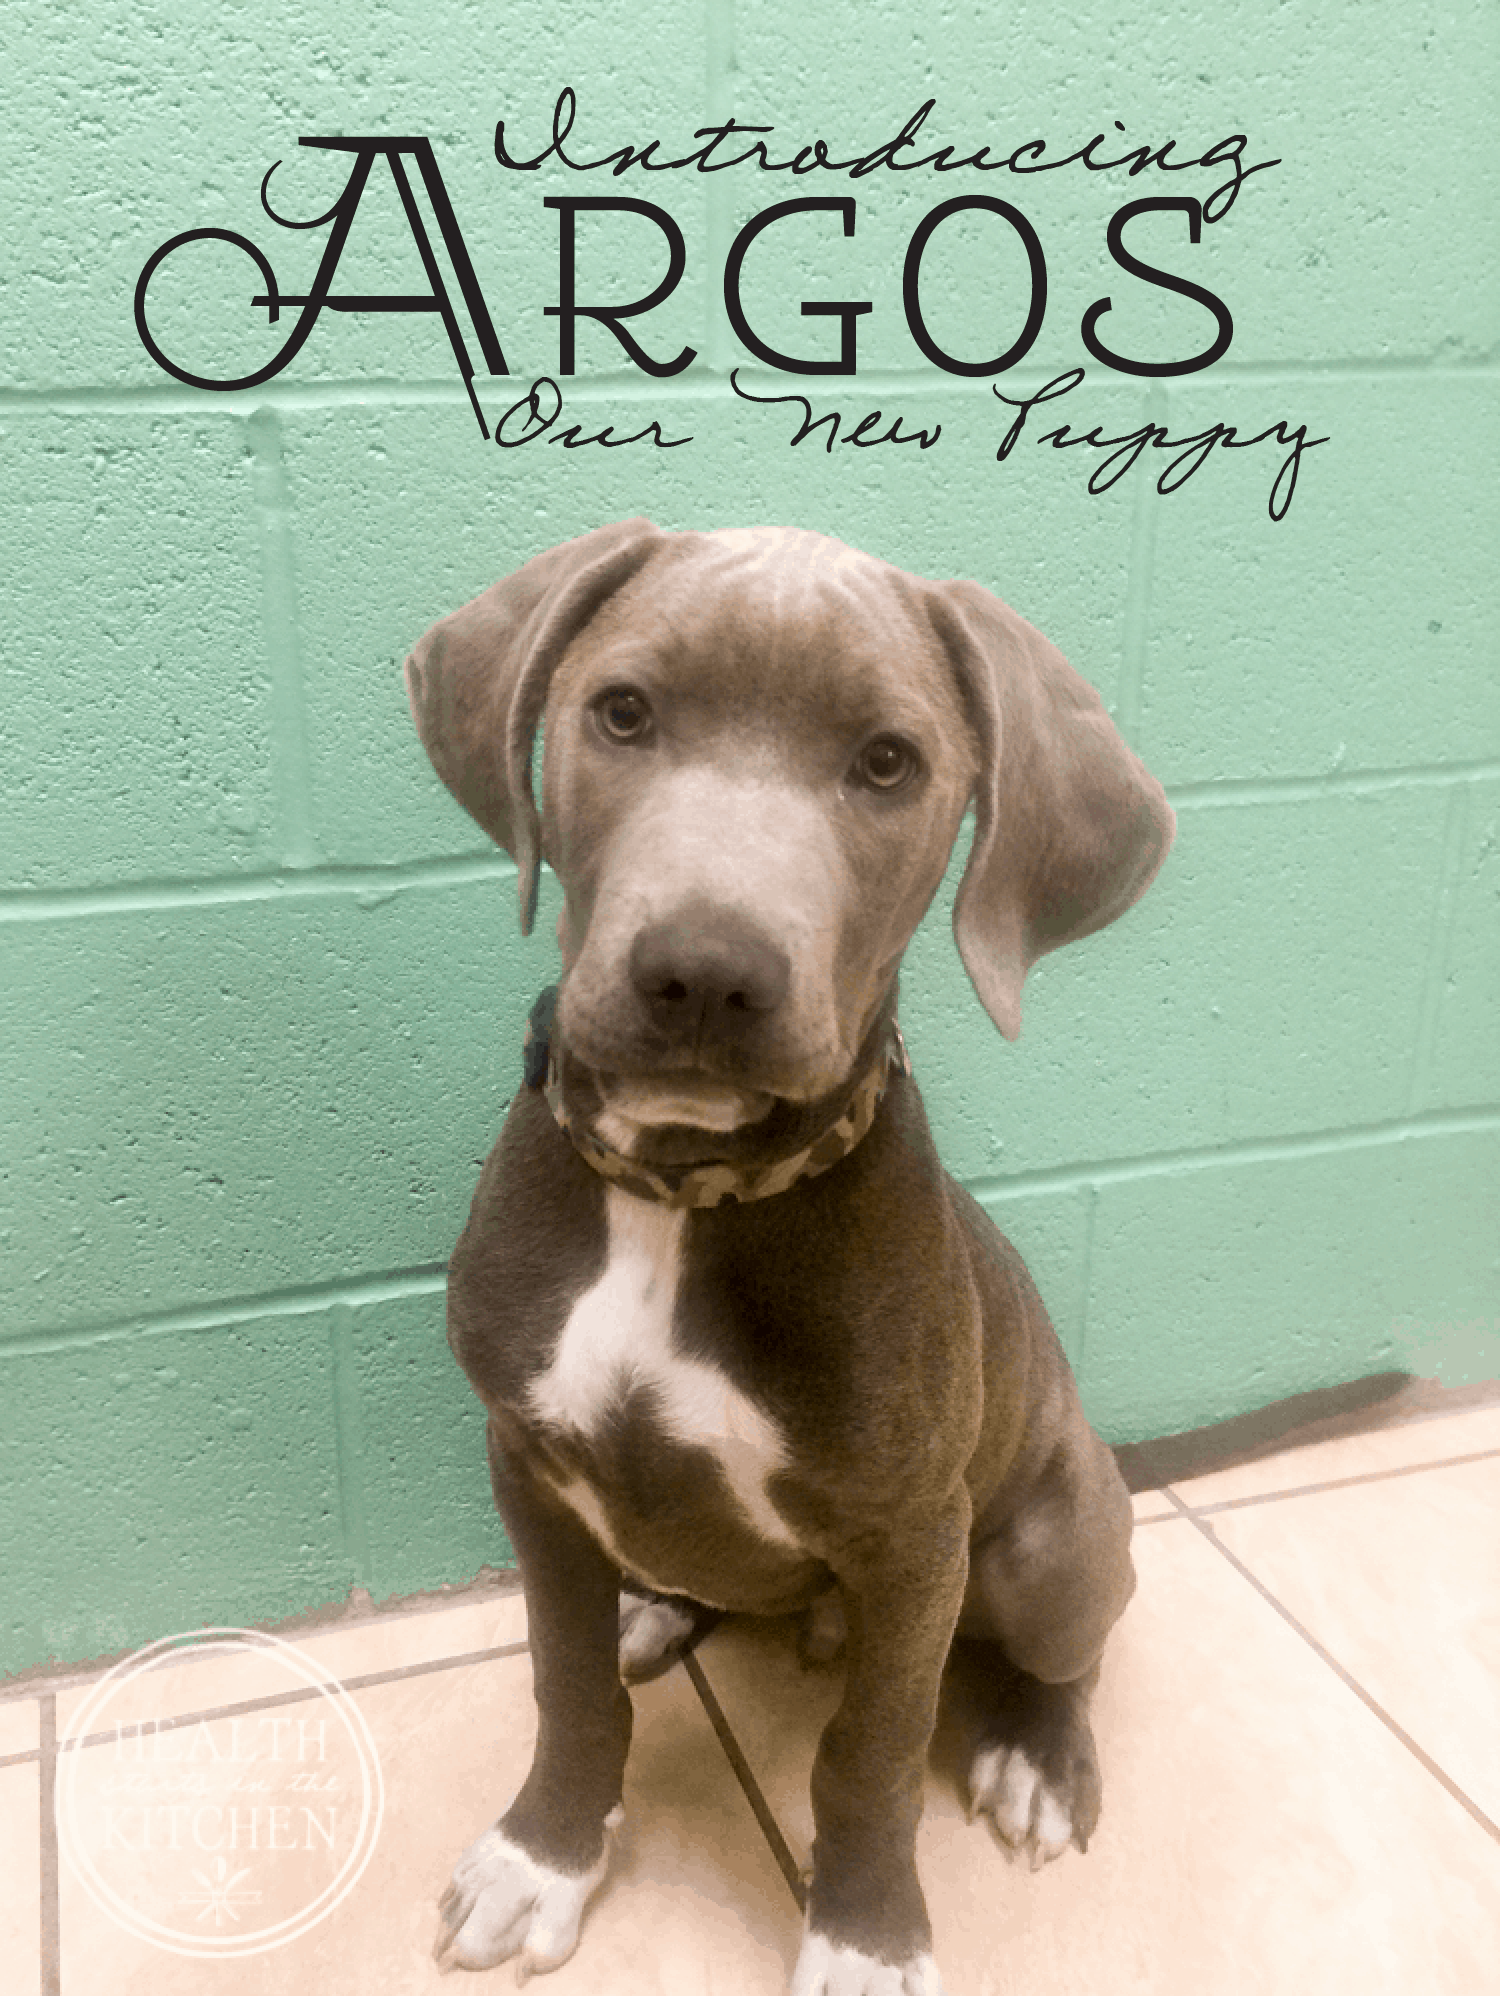 Introducing Argos, Our New Puppy!